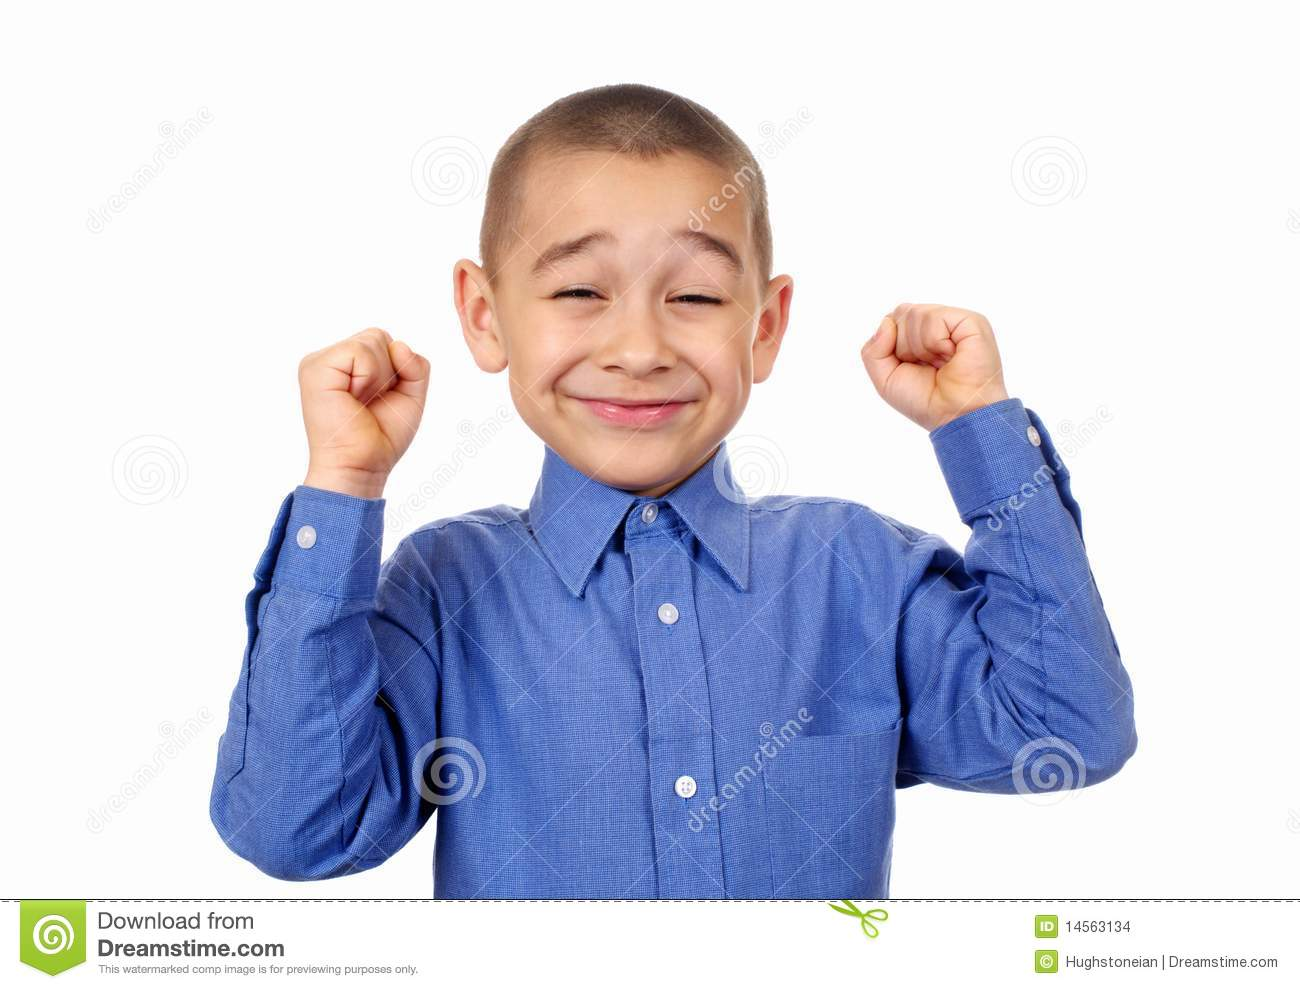 Https Www Dreamstime Com Stock Images Kid Cheering Image14563134